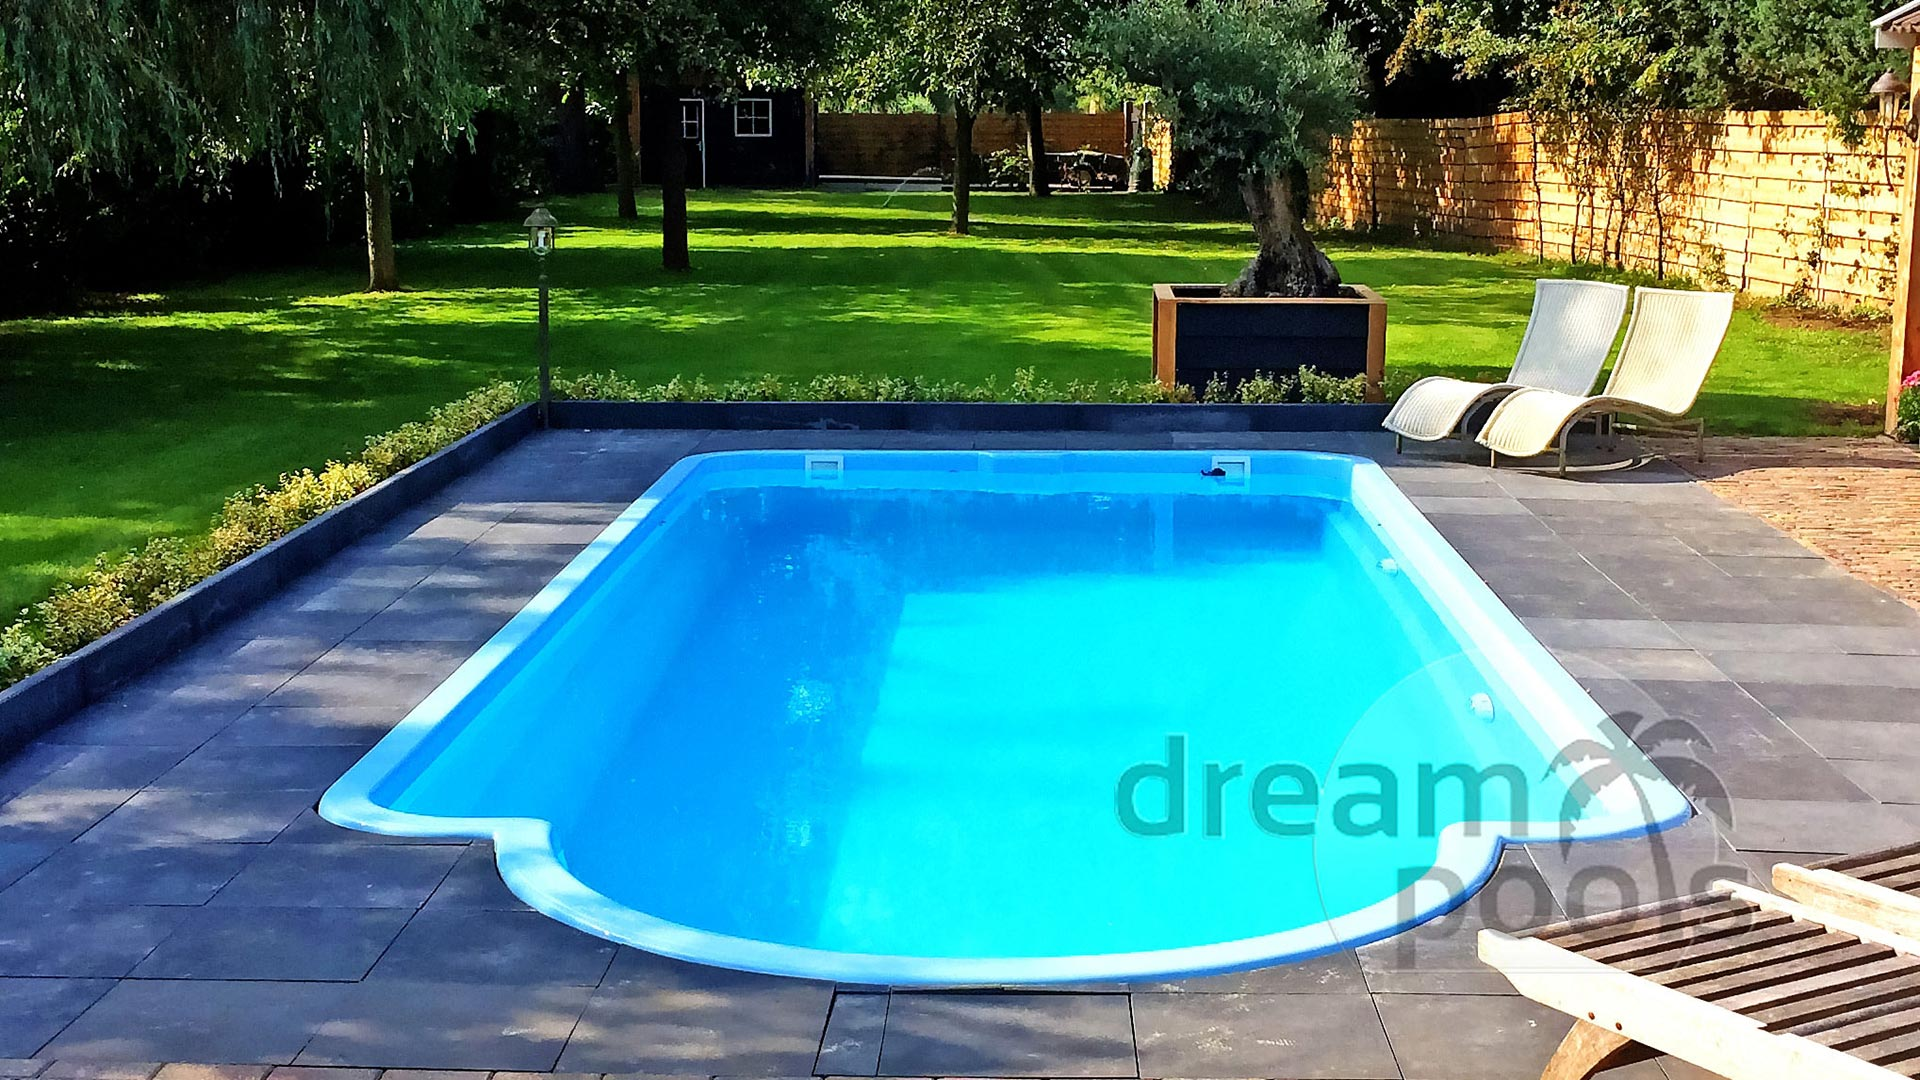 Dreampools de beste kwaliteit polyester zwembad for Zwembad polyester